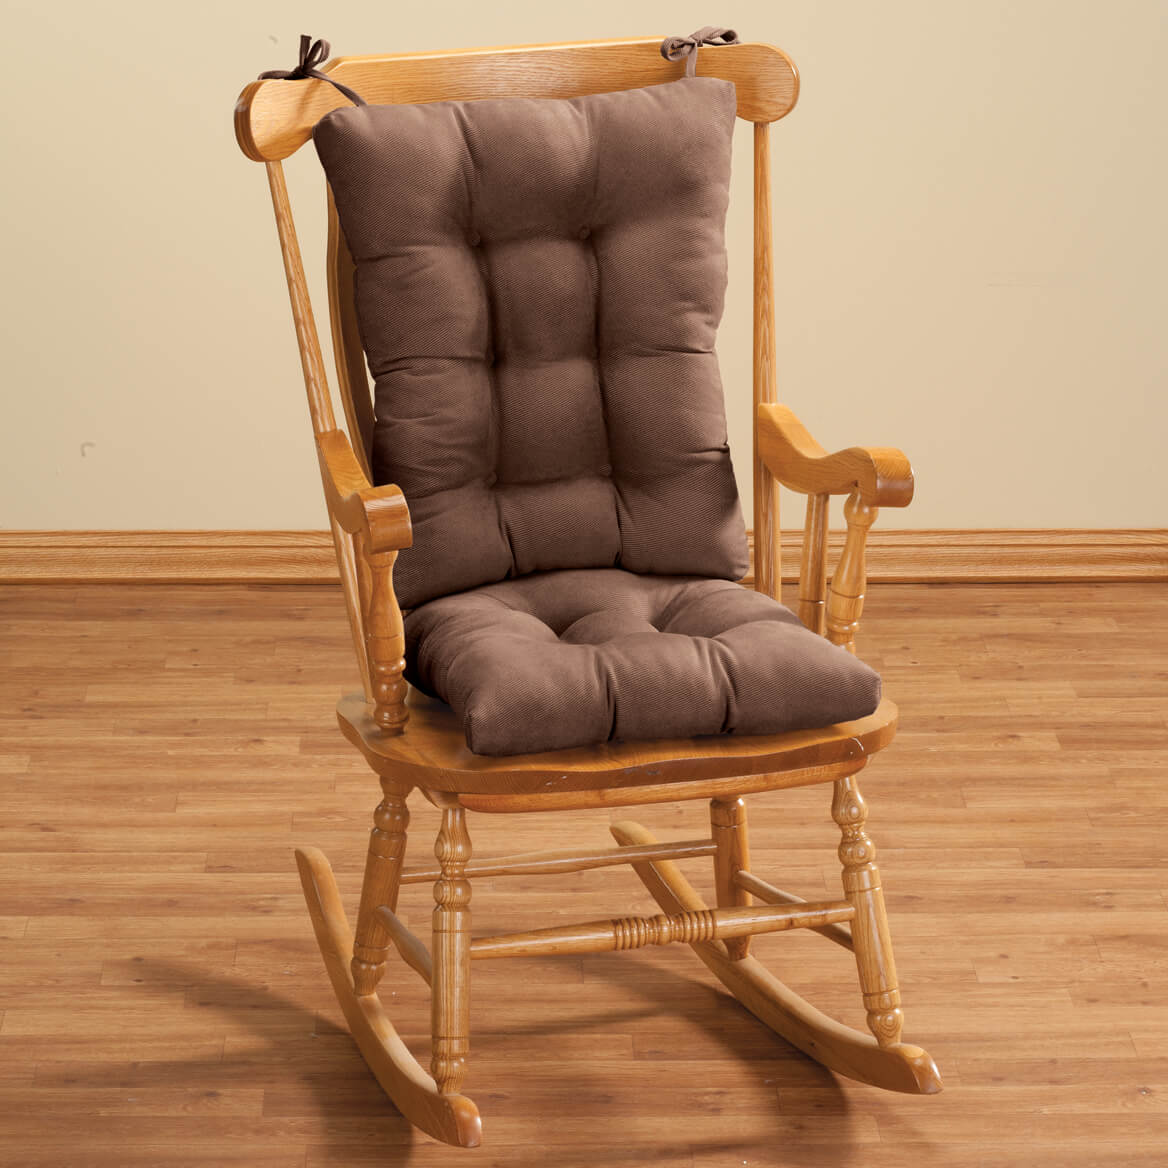 where to buy a rocking chair computer back twillo cushion set